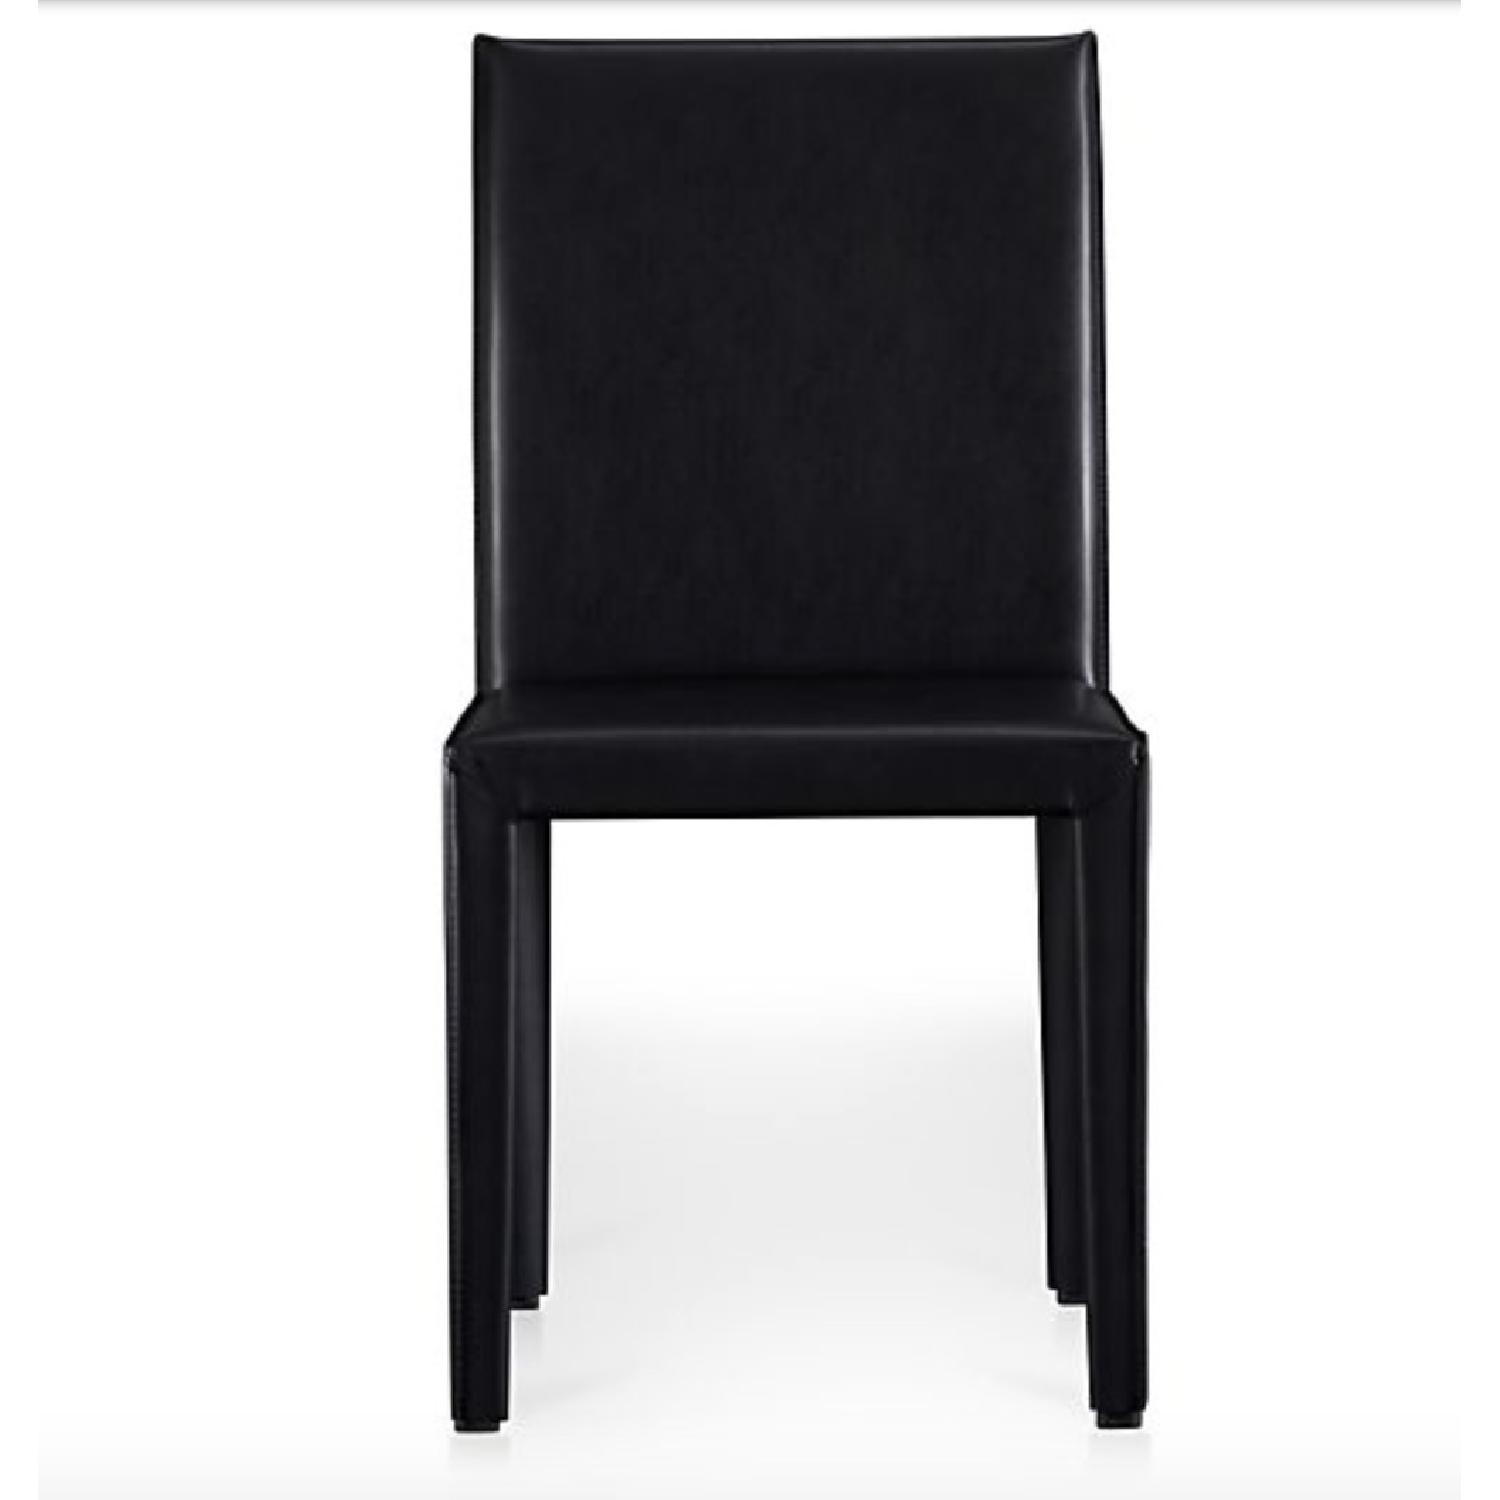 Crate & Barrel Folio Bonded Leather Dining Chair - image-2